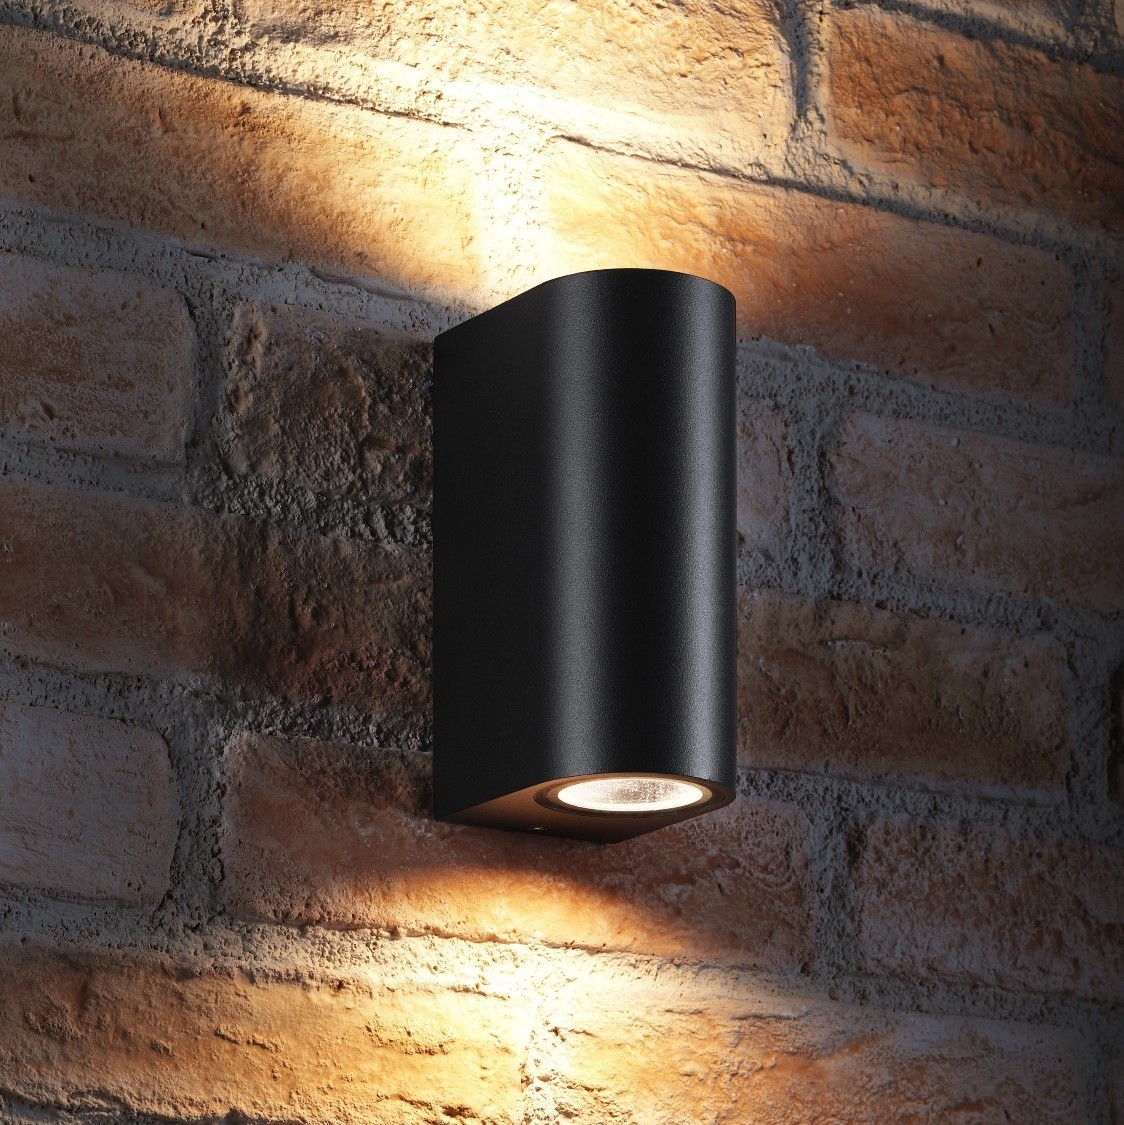 auraglow 14w outdoor double up down wall light windsor black auraglow led lighting. Black Bedroom Furniture Sets. Home Design Ideas